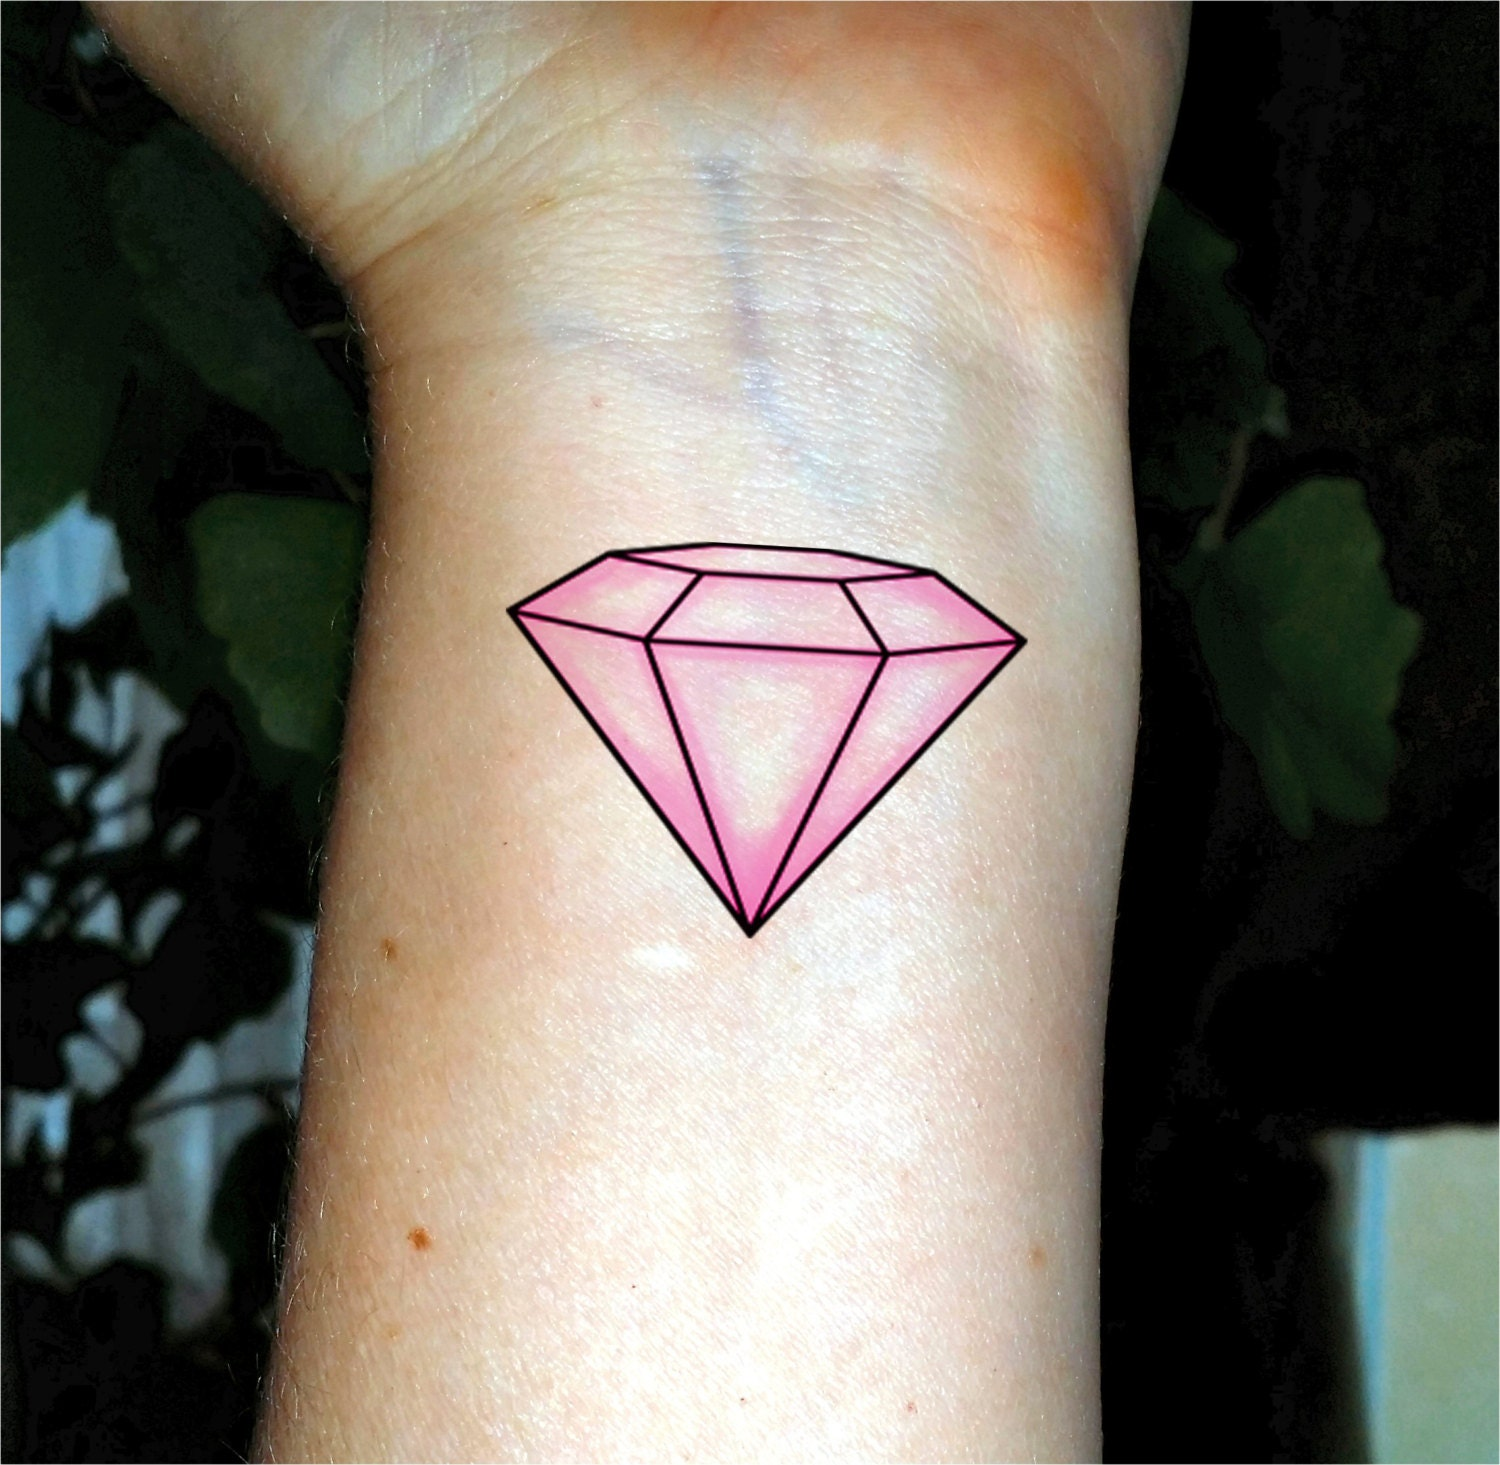 Bachelorette tattoo pink diamond tattoo Bachelorette party